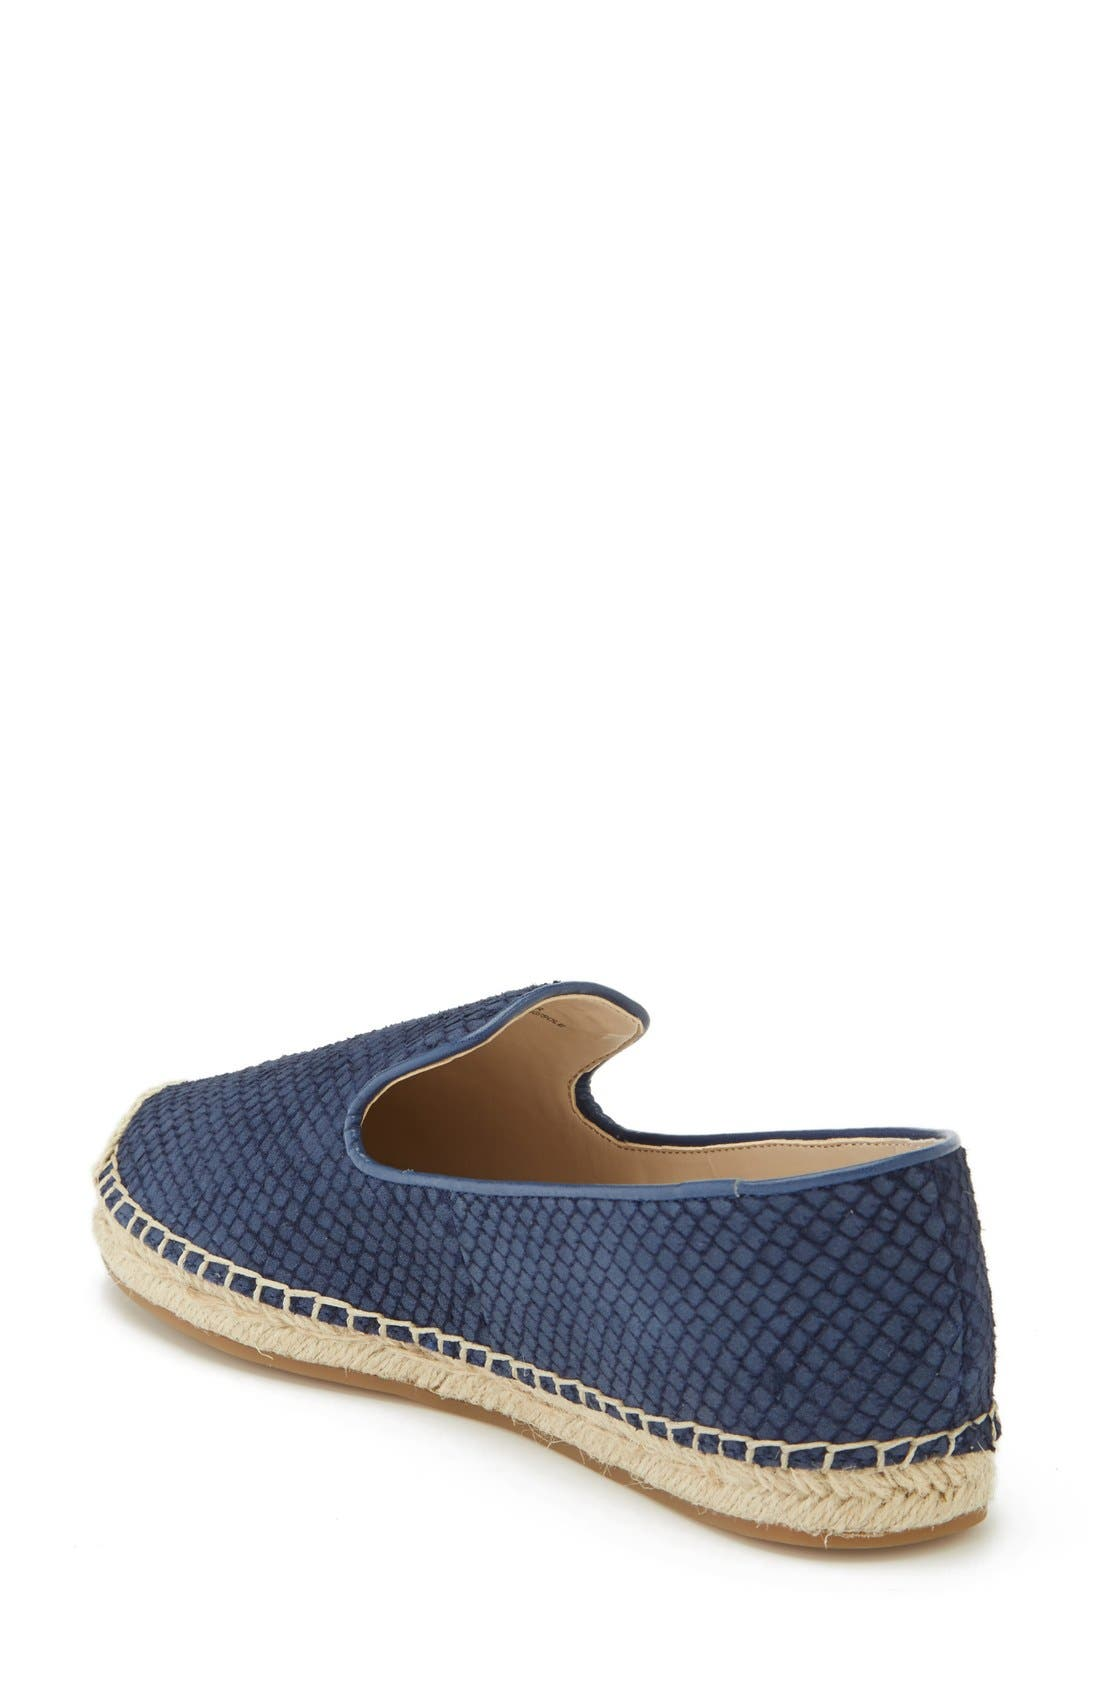 Alternate Image 2  - Vince Camuto 'Driston' Espadrille Flat (Women)